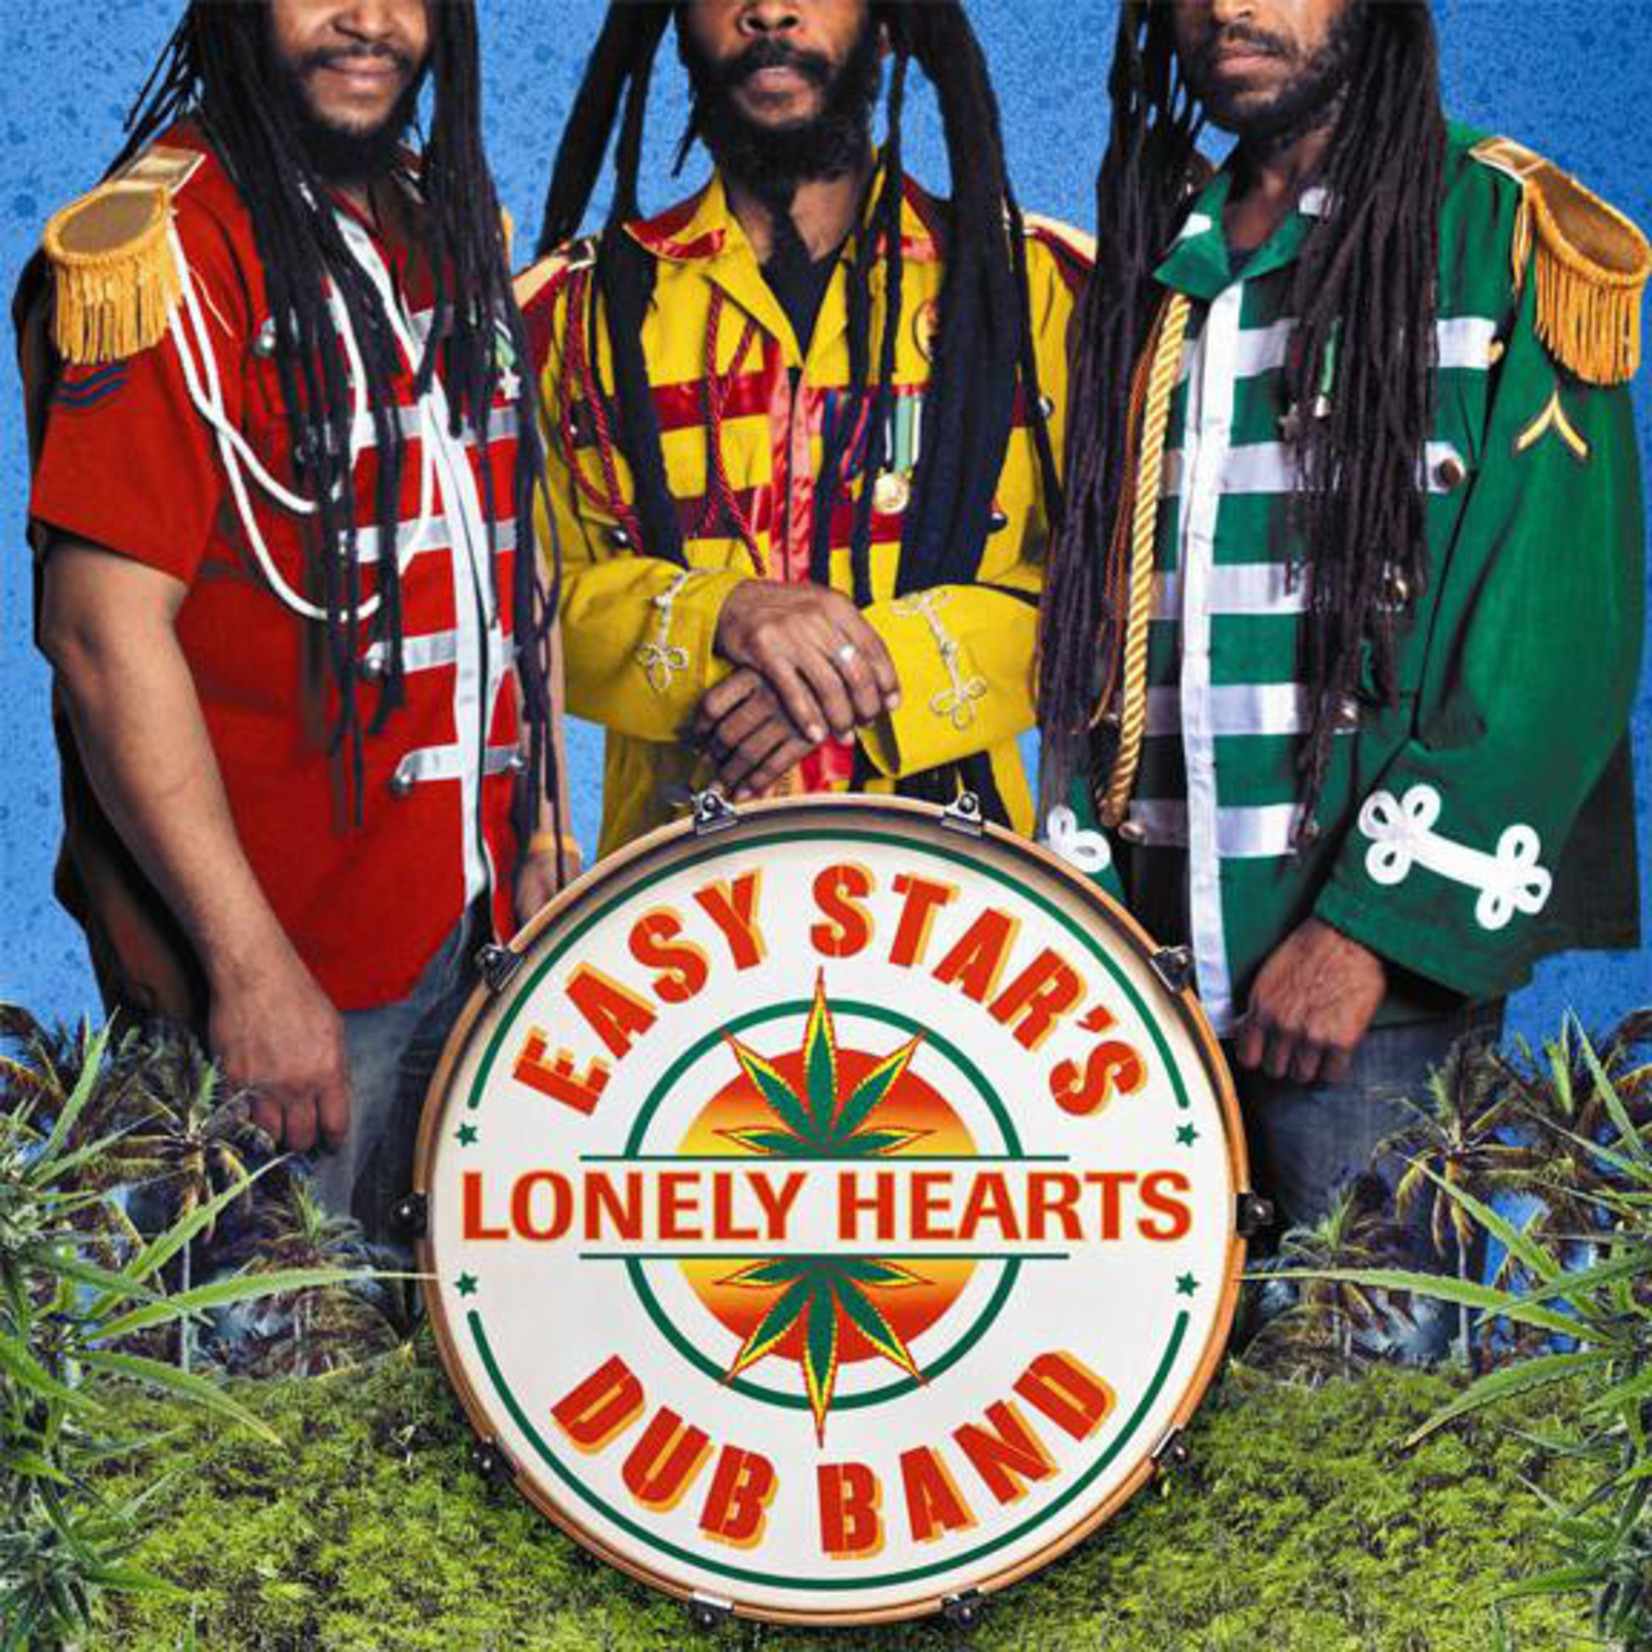 Easy Star All-Stars: Easy Star's Lonely Hearts Dub Band [EASY STAR]